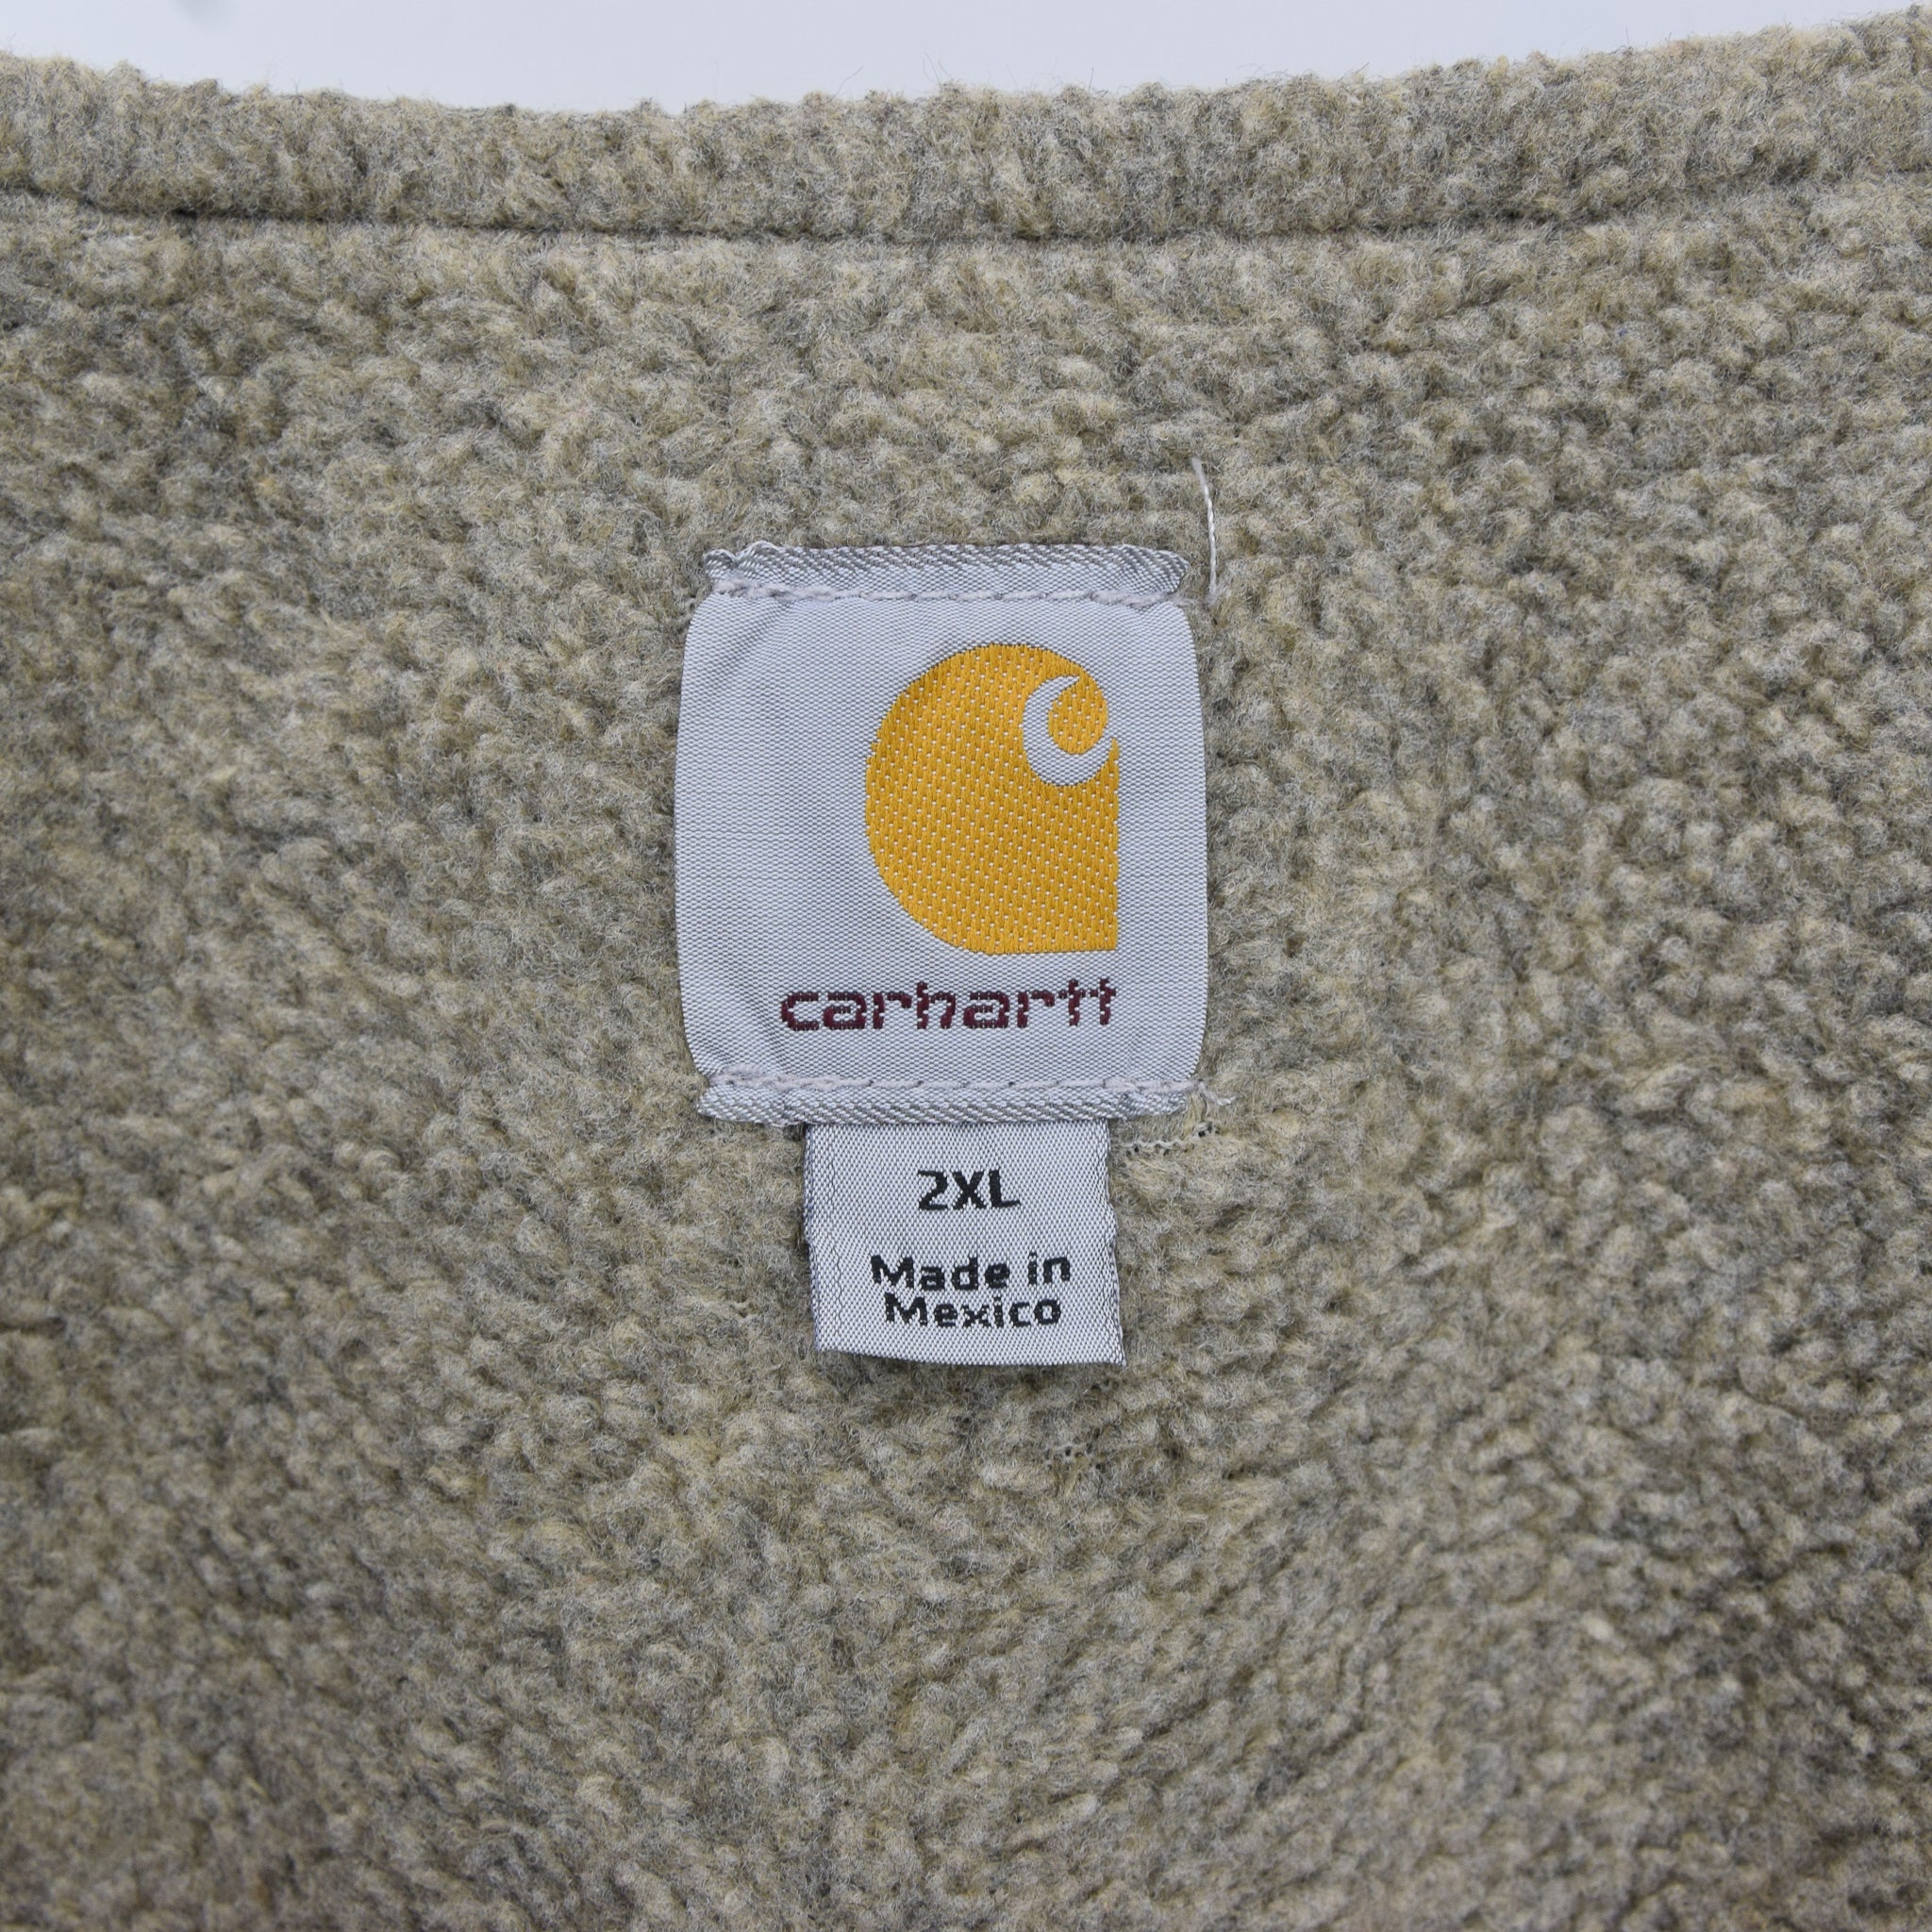 Vintage Carhartt Green Gilet Duck Canvas Cotton Waistcoat Vest Sherpa Lined XXL label